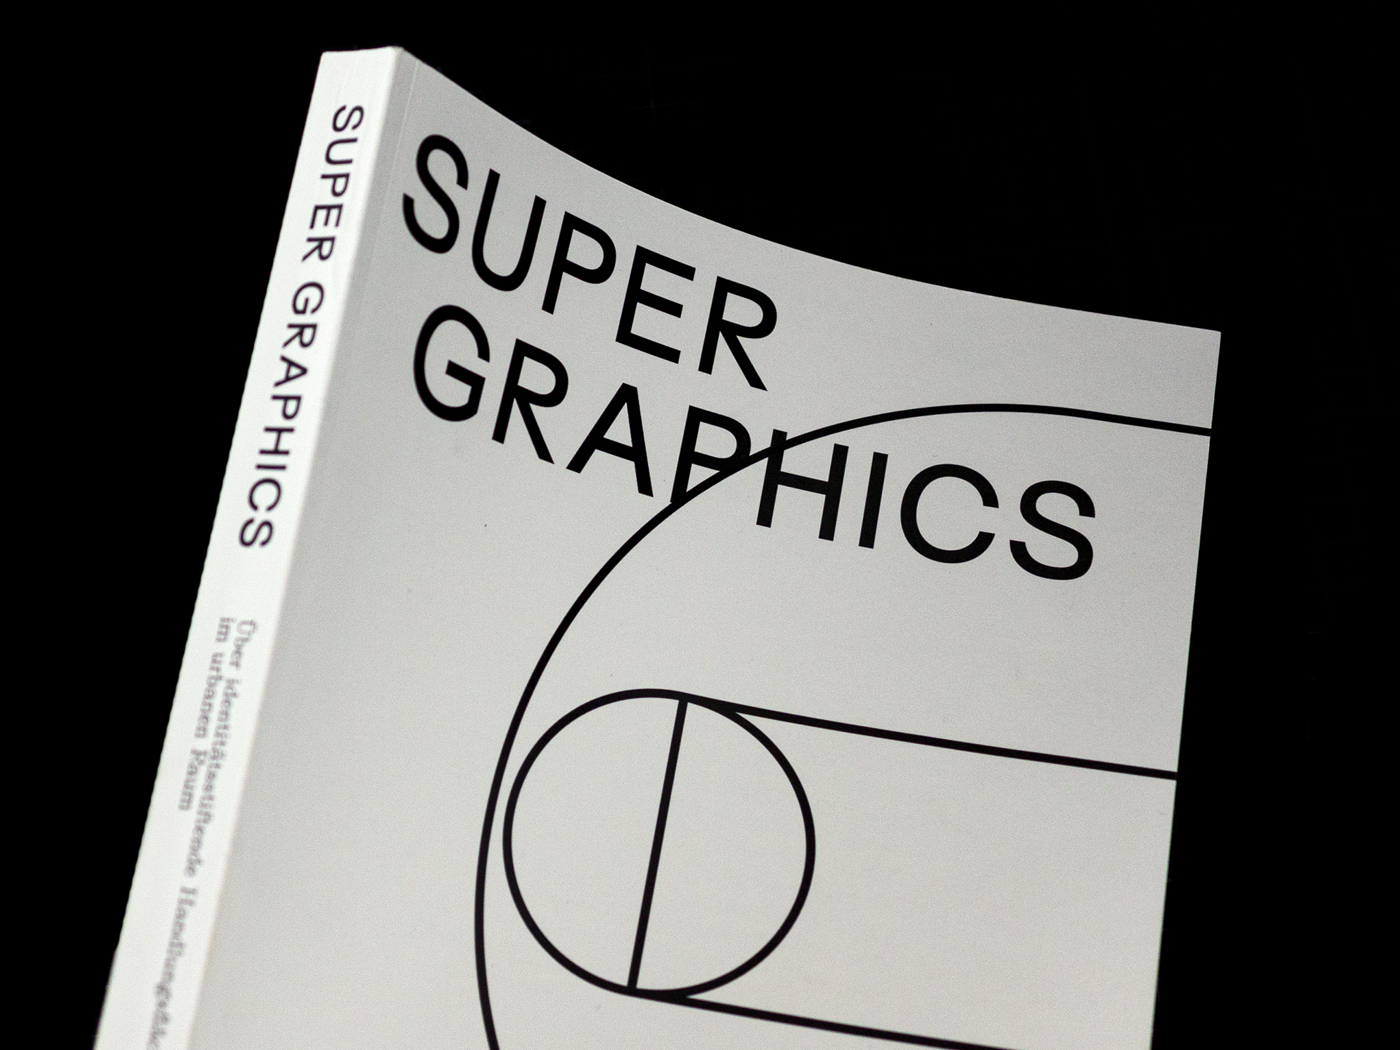 Supergraphics Call for Creatives